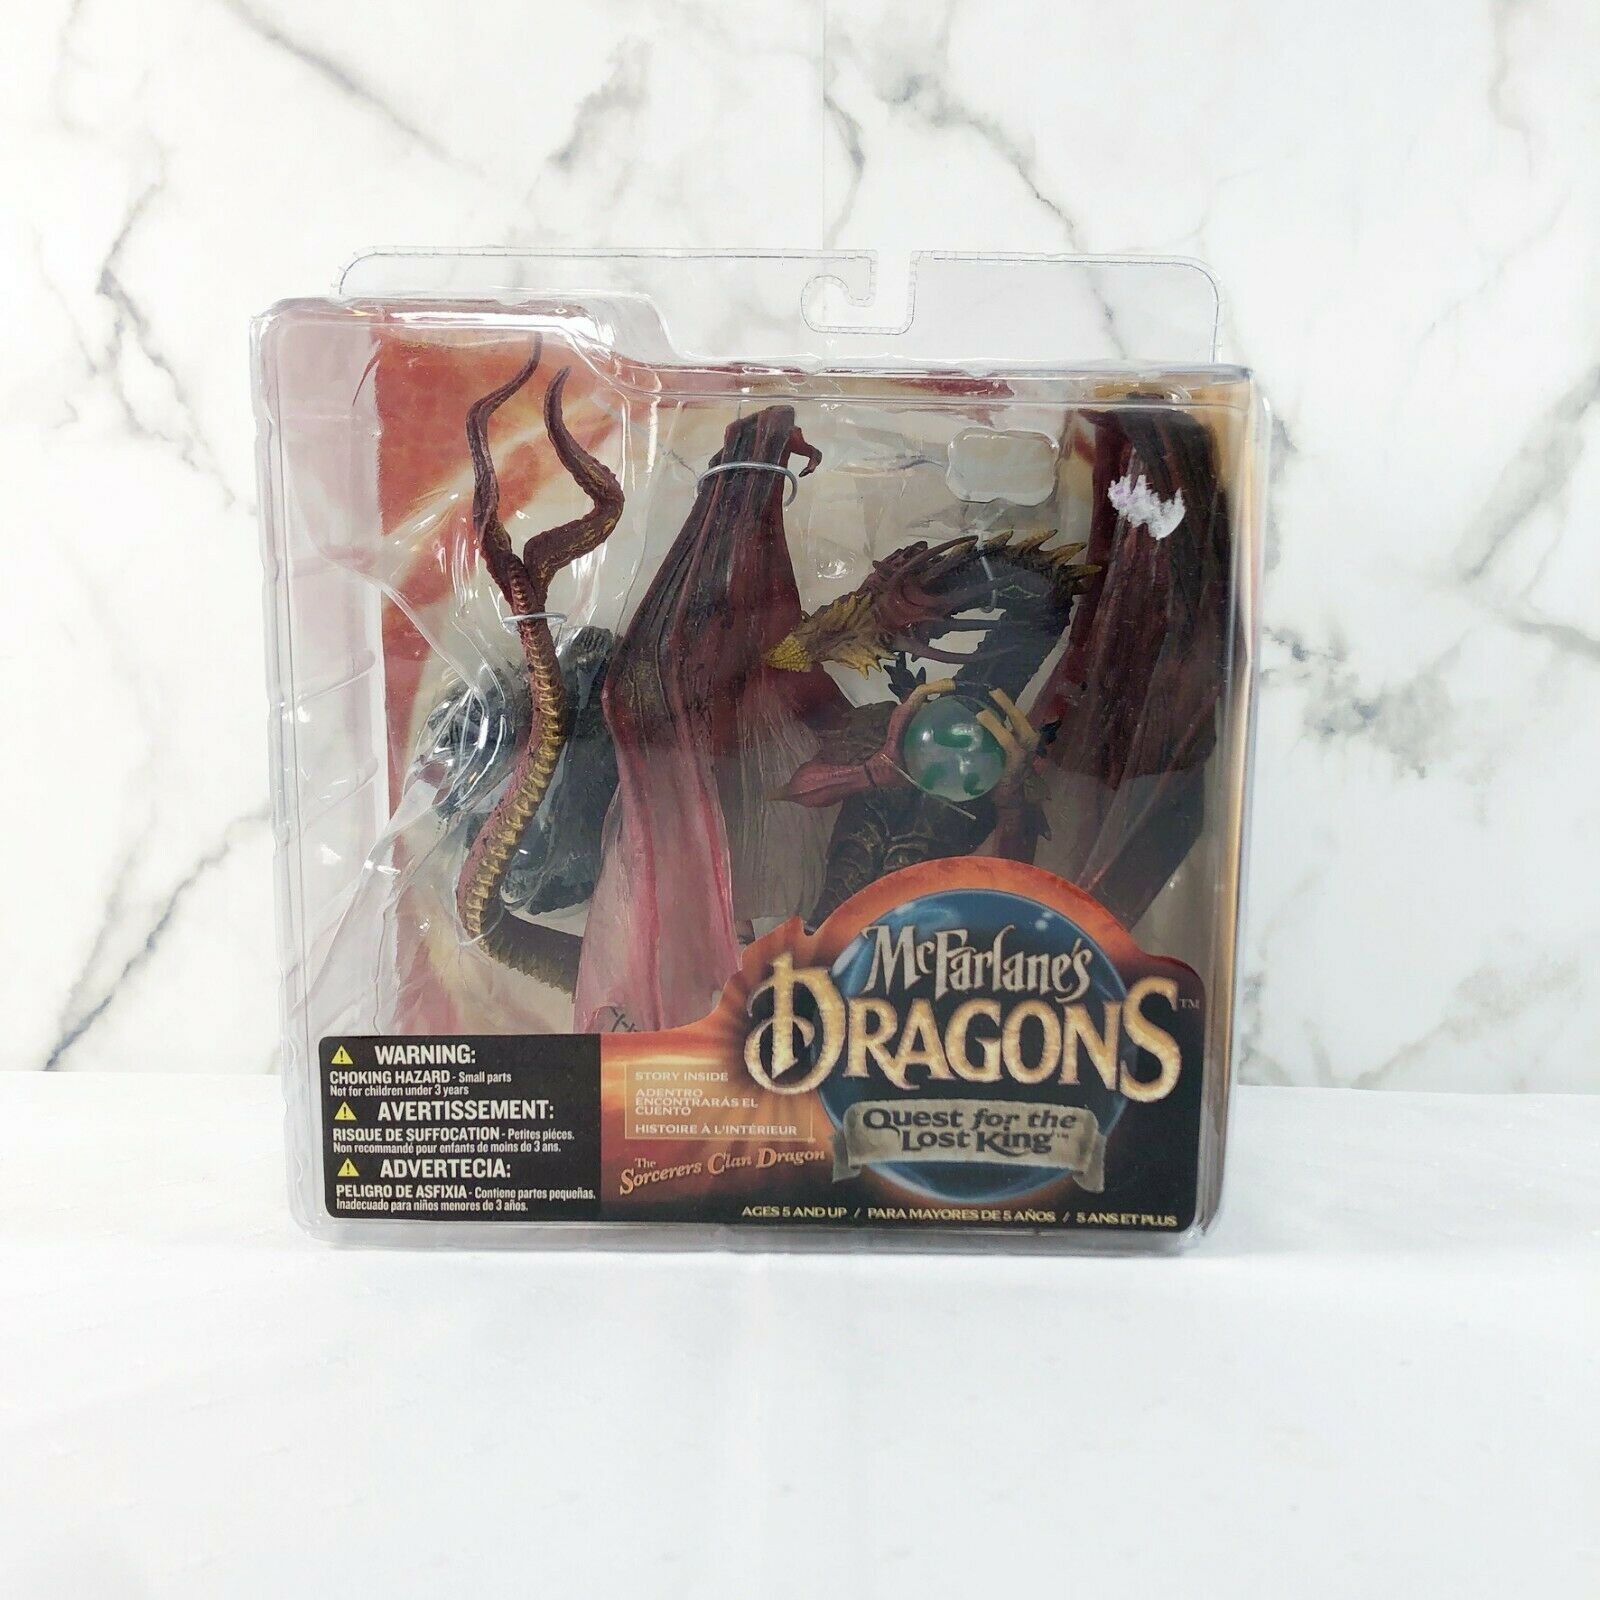 McFarlane's Dragons Quest For The Lost re Sorcerers Clan Dragon RARE nuovo